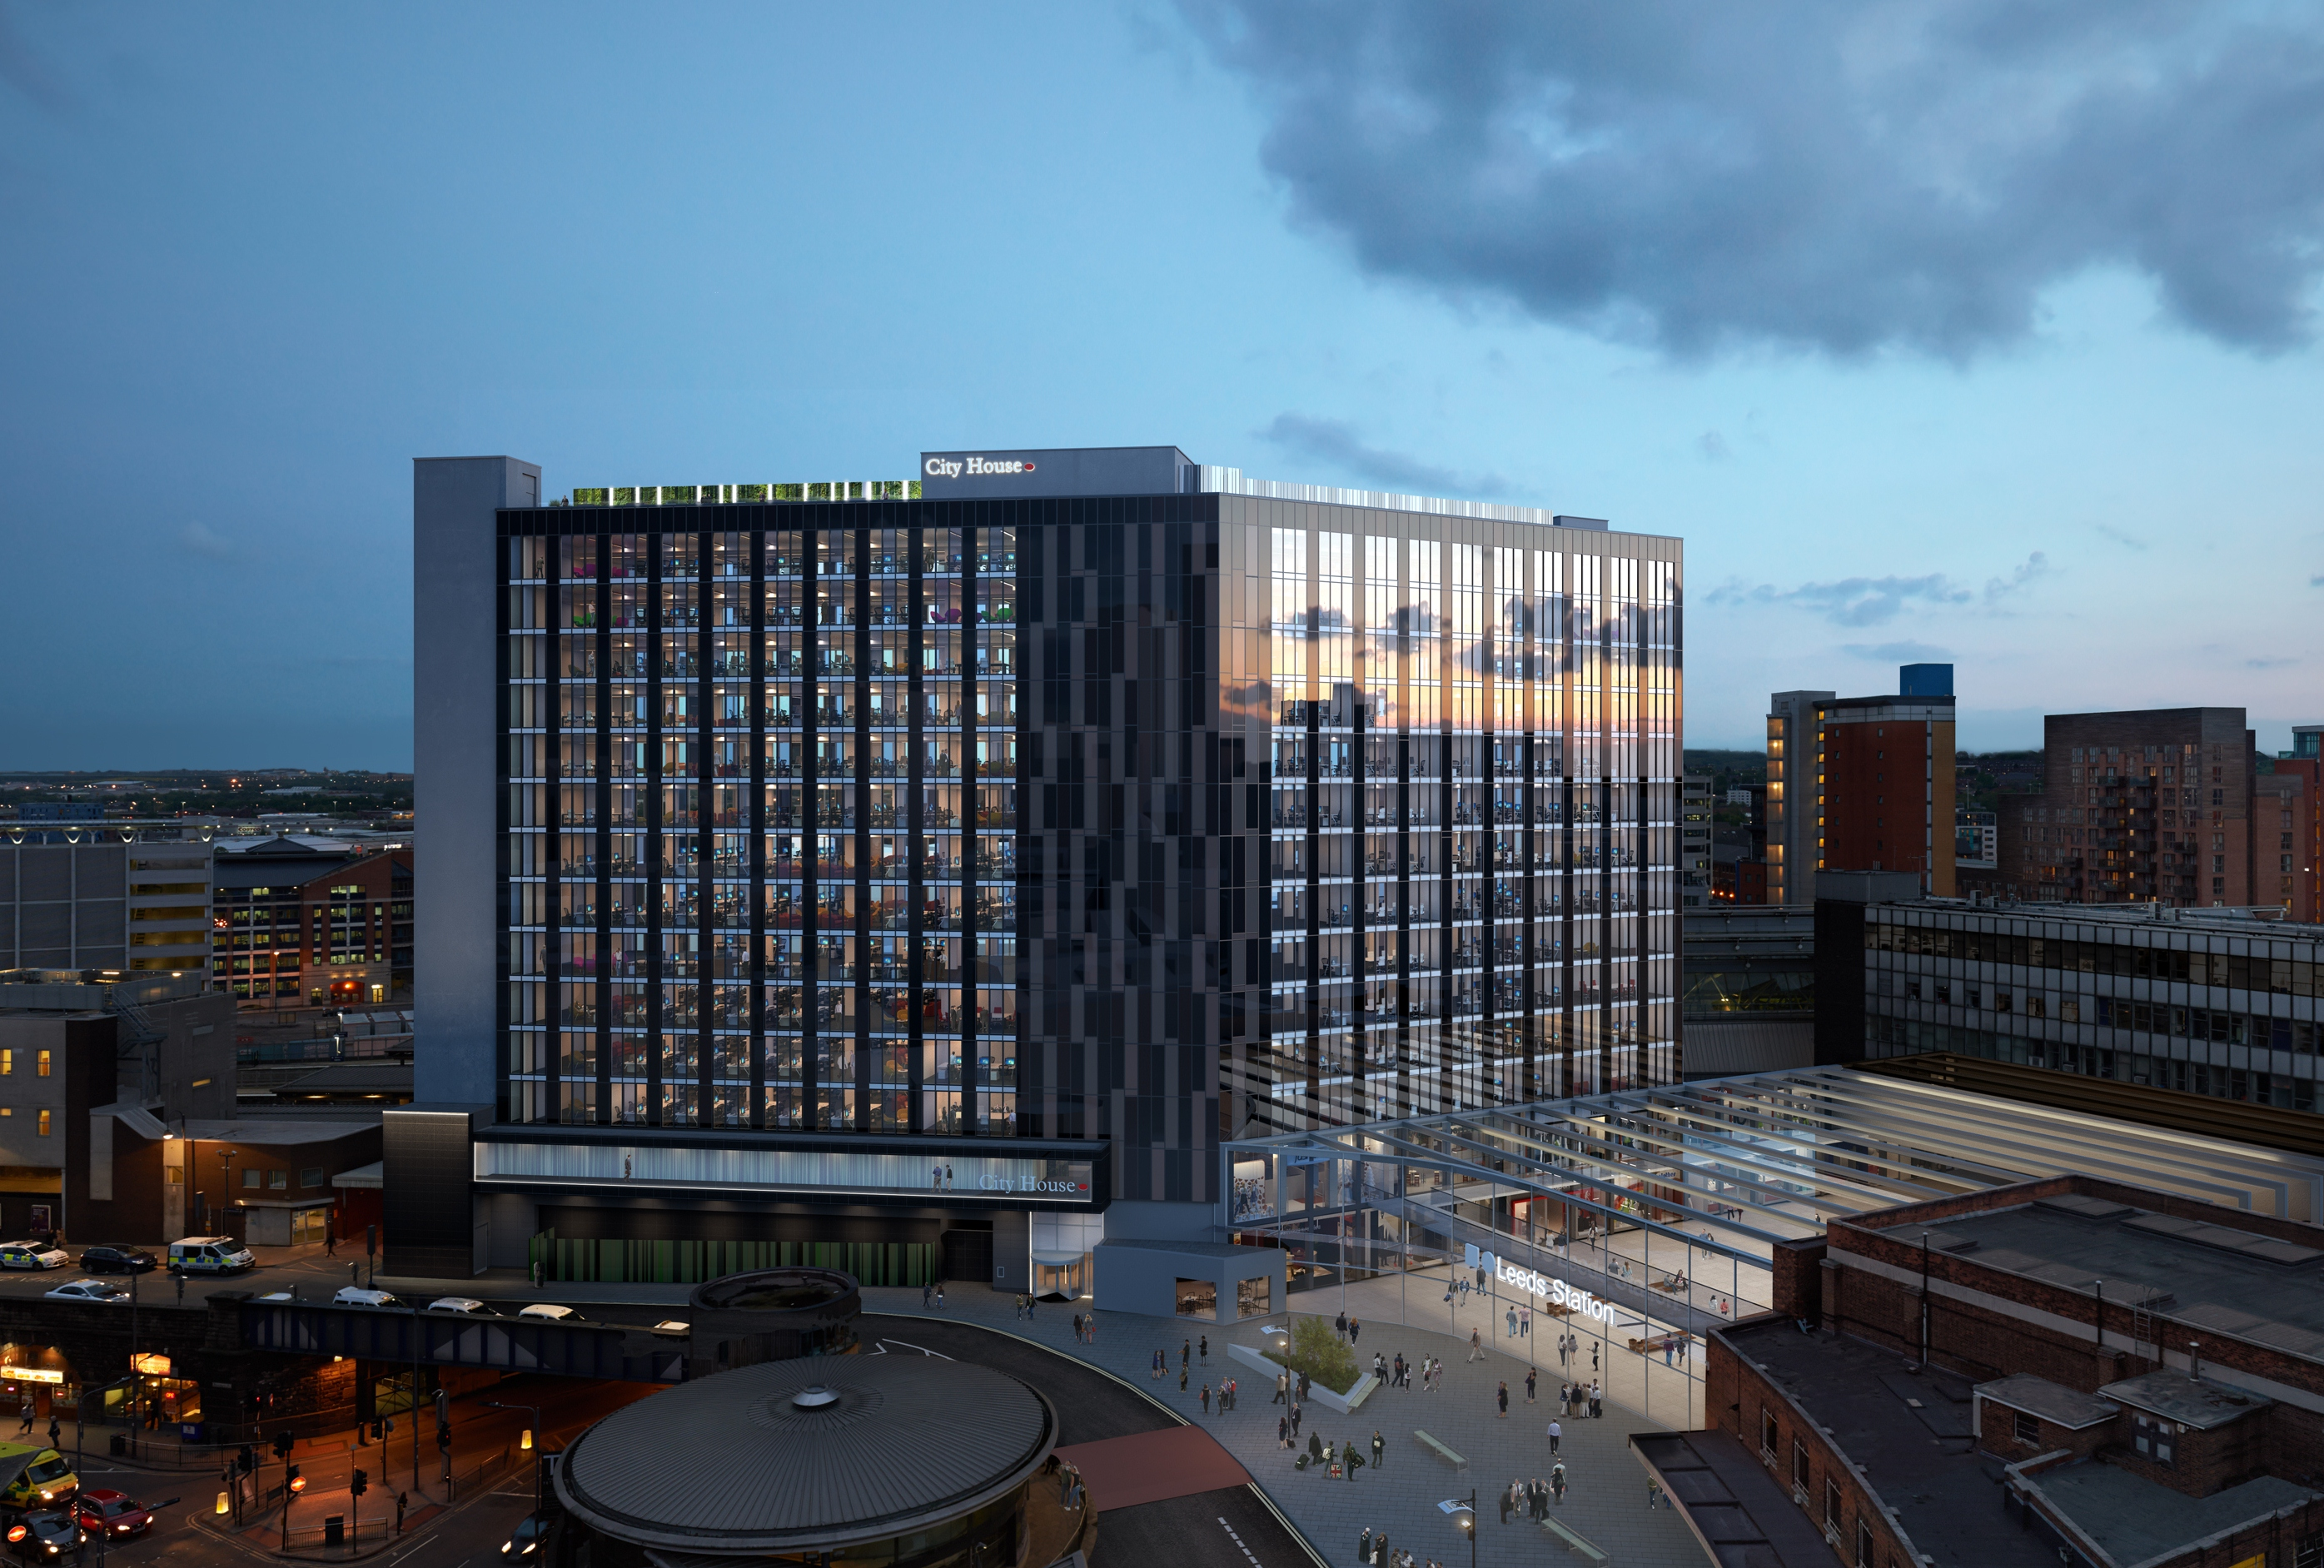 CBRE and Knight Frank Appointed at City House